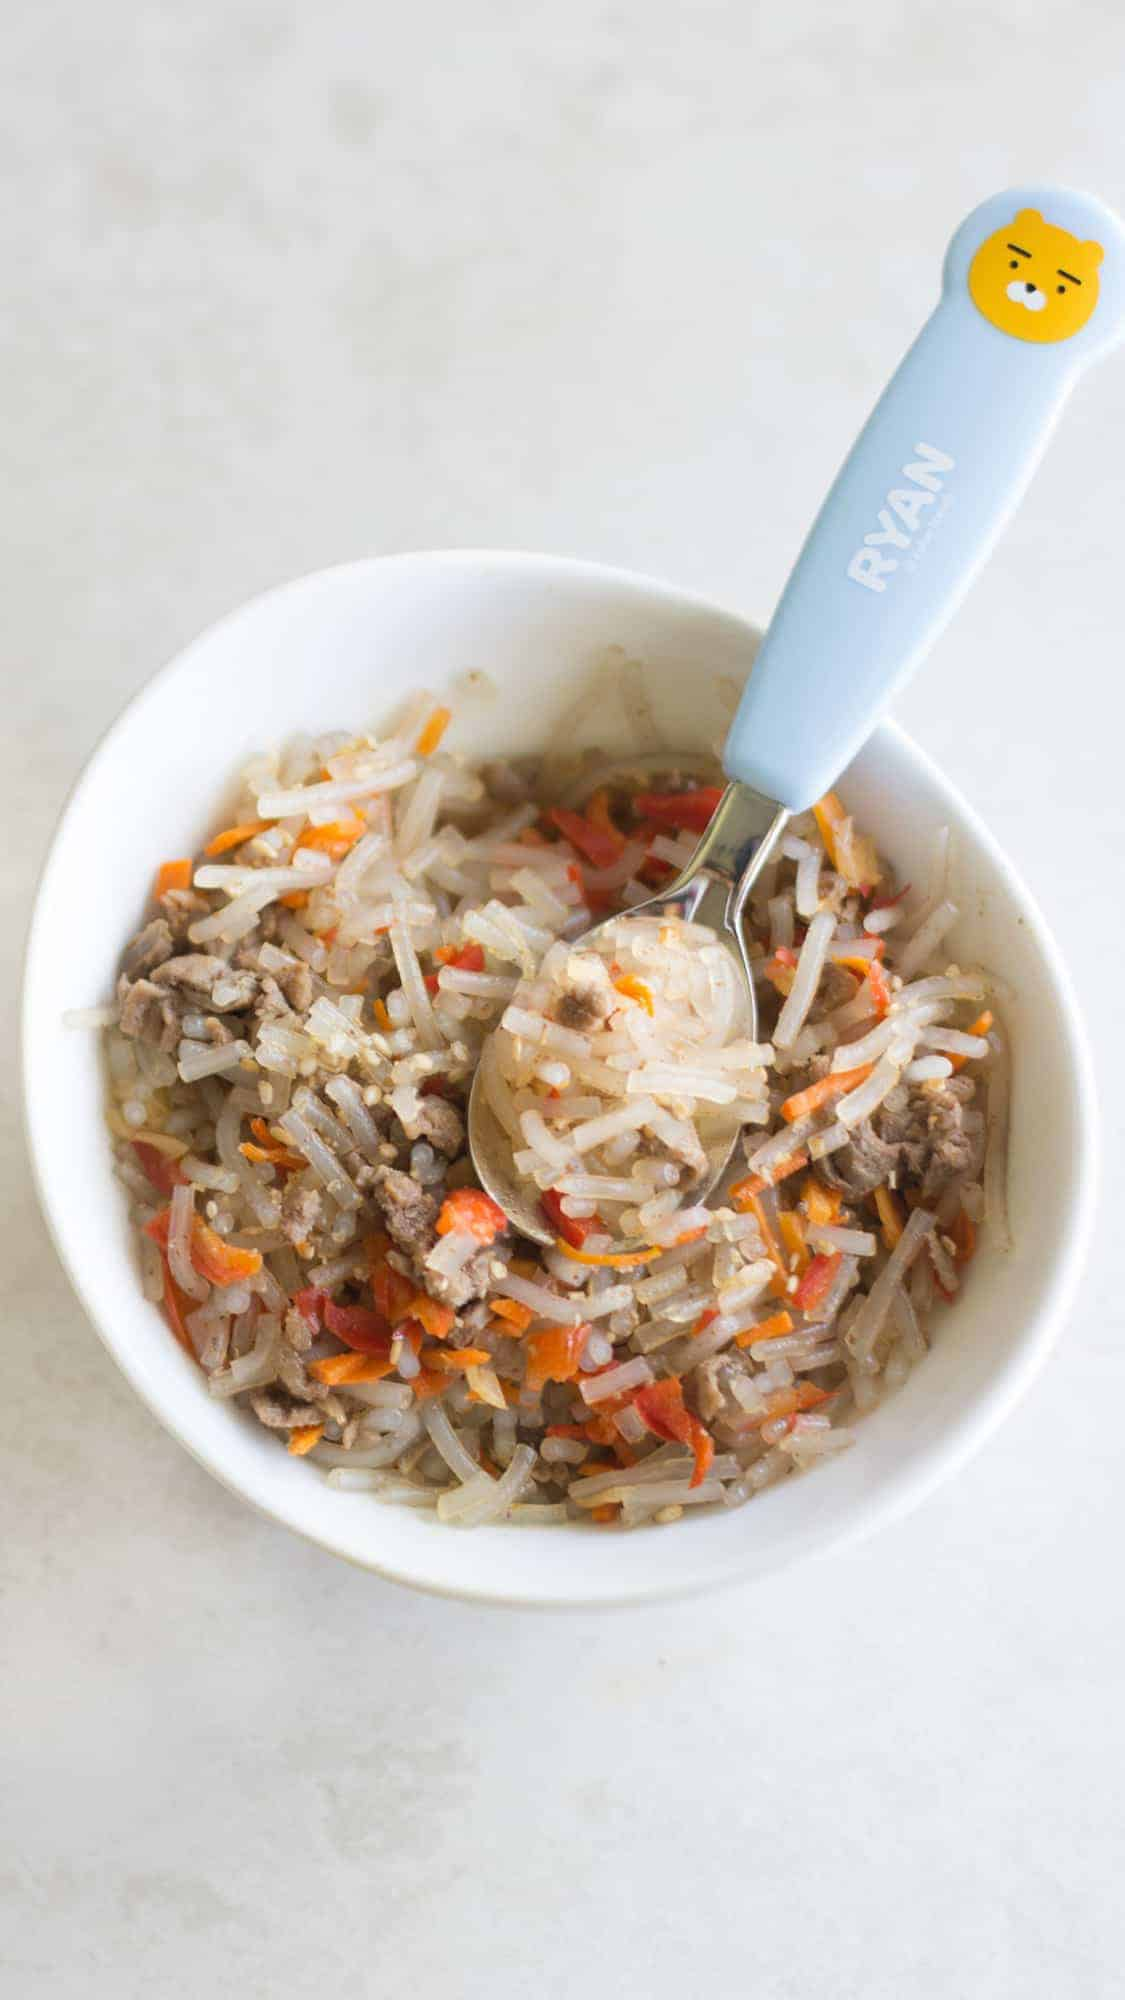 japchae cut into small strands for baby with a baby spoon